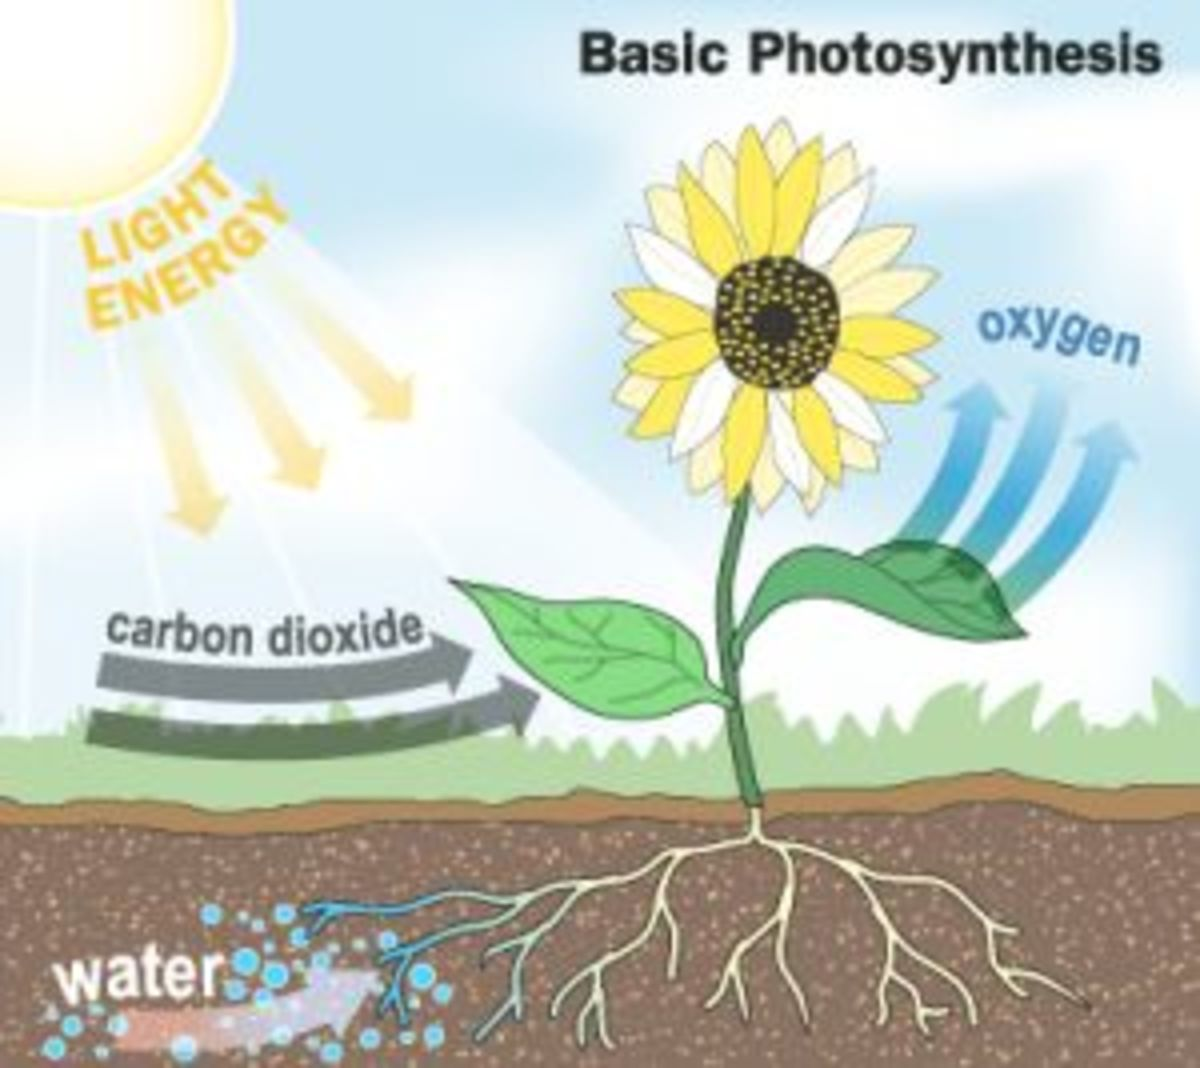 a simple diagram of photosynthesisphotosynthesis diagram  this is a great link   some animated photosynthesis at work  have fun